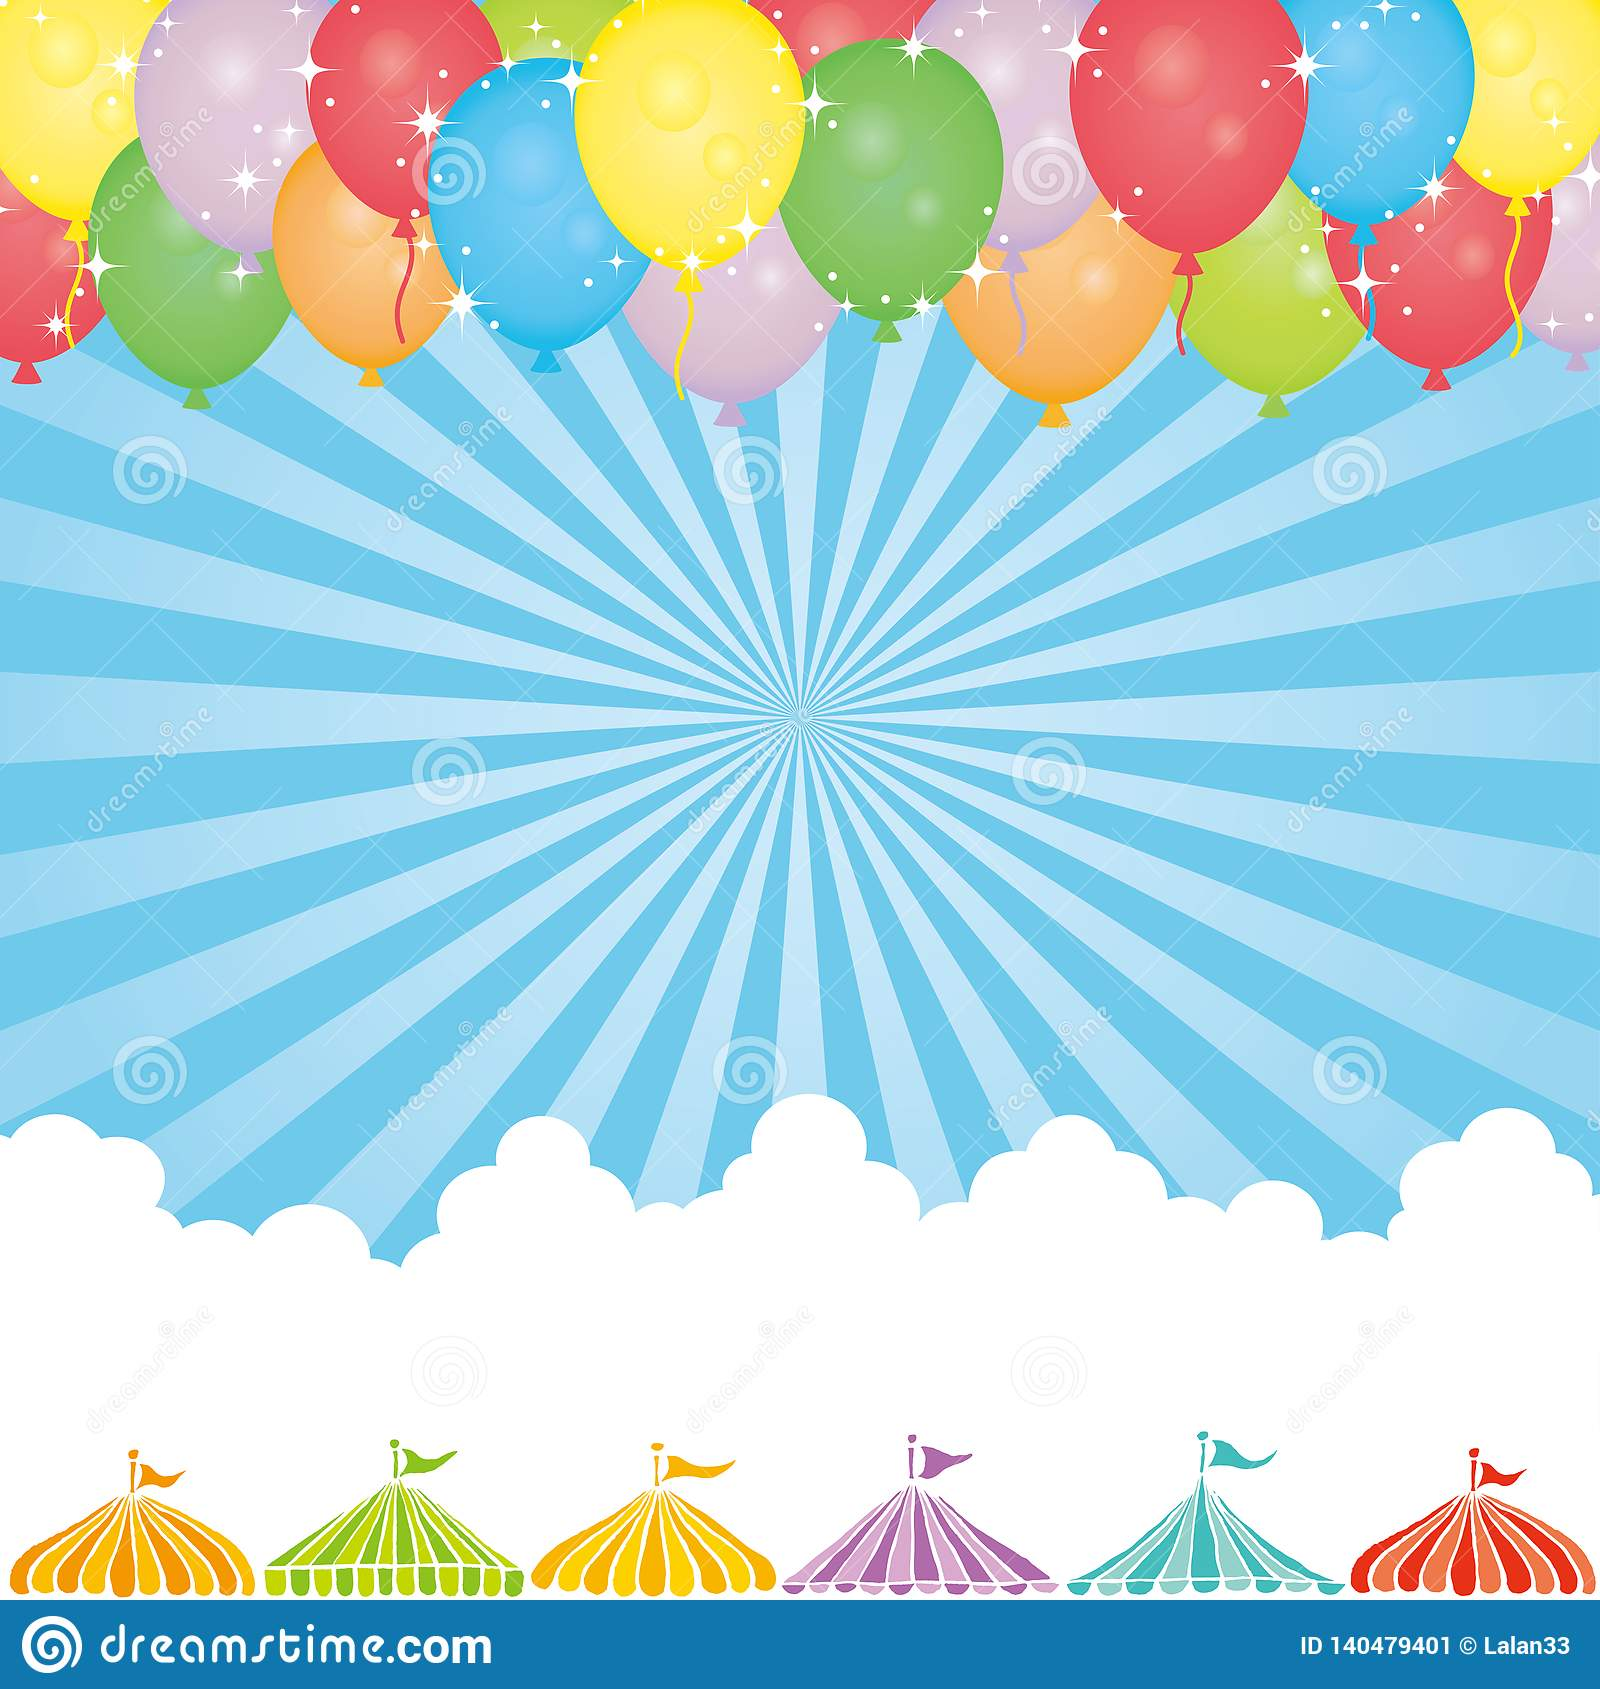 Sky background with balloon and event tents.